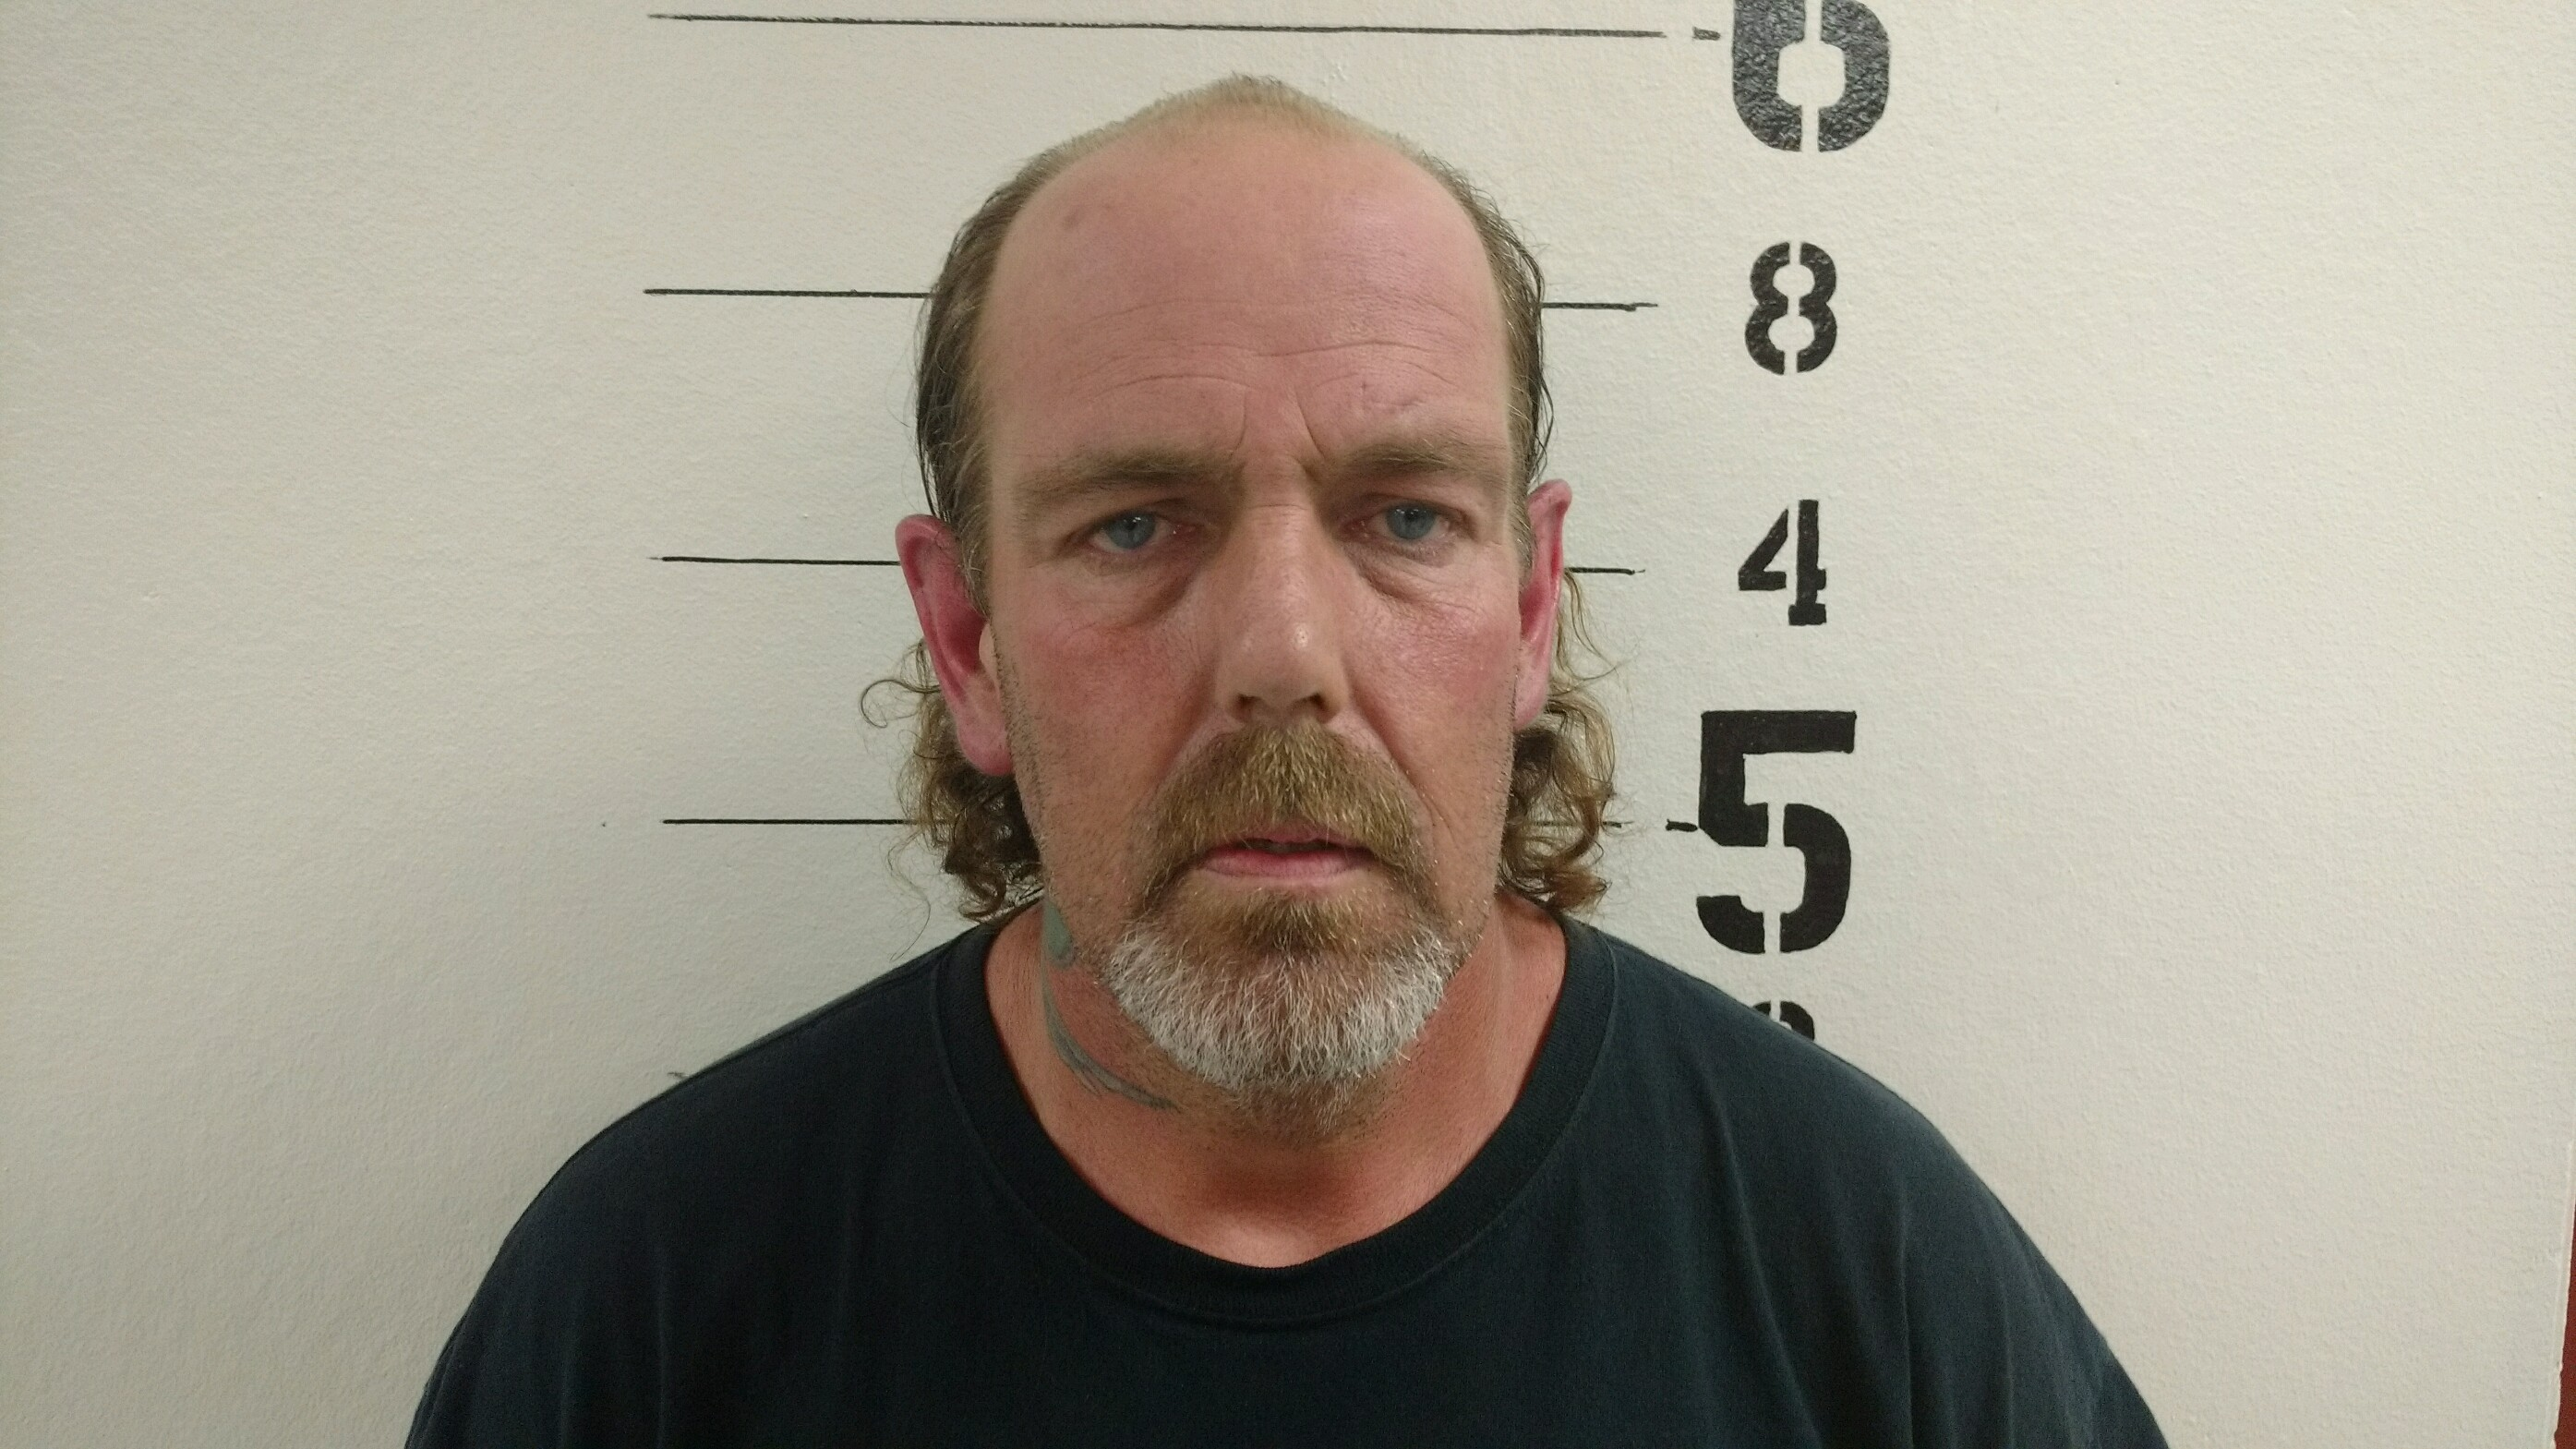 3 Arrested On Drug Charges After A Report Of A Man Selling